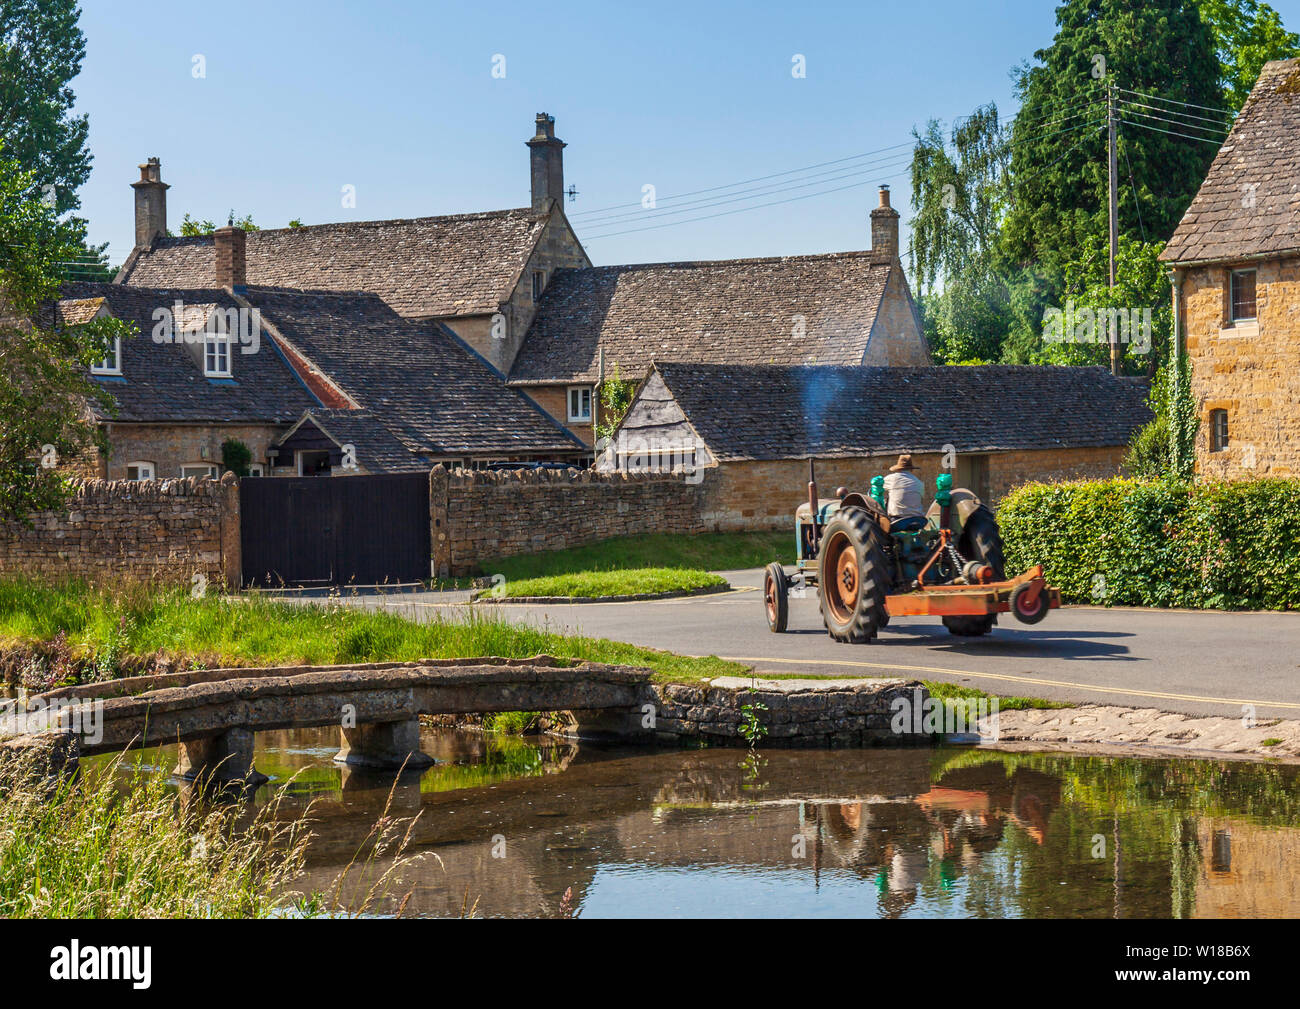 Village life In Lower Slaughter. - Stock Image